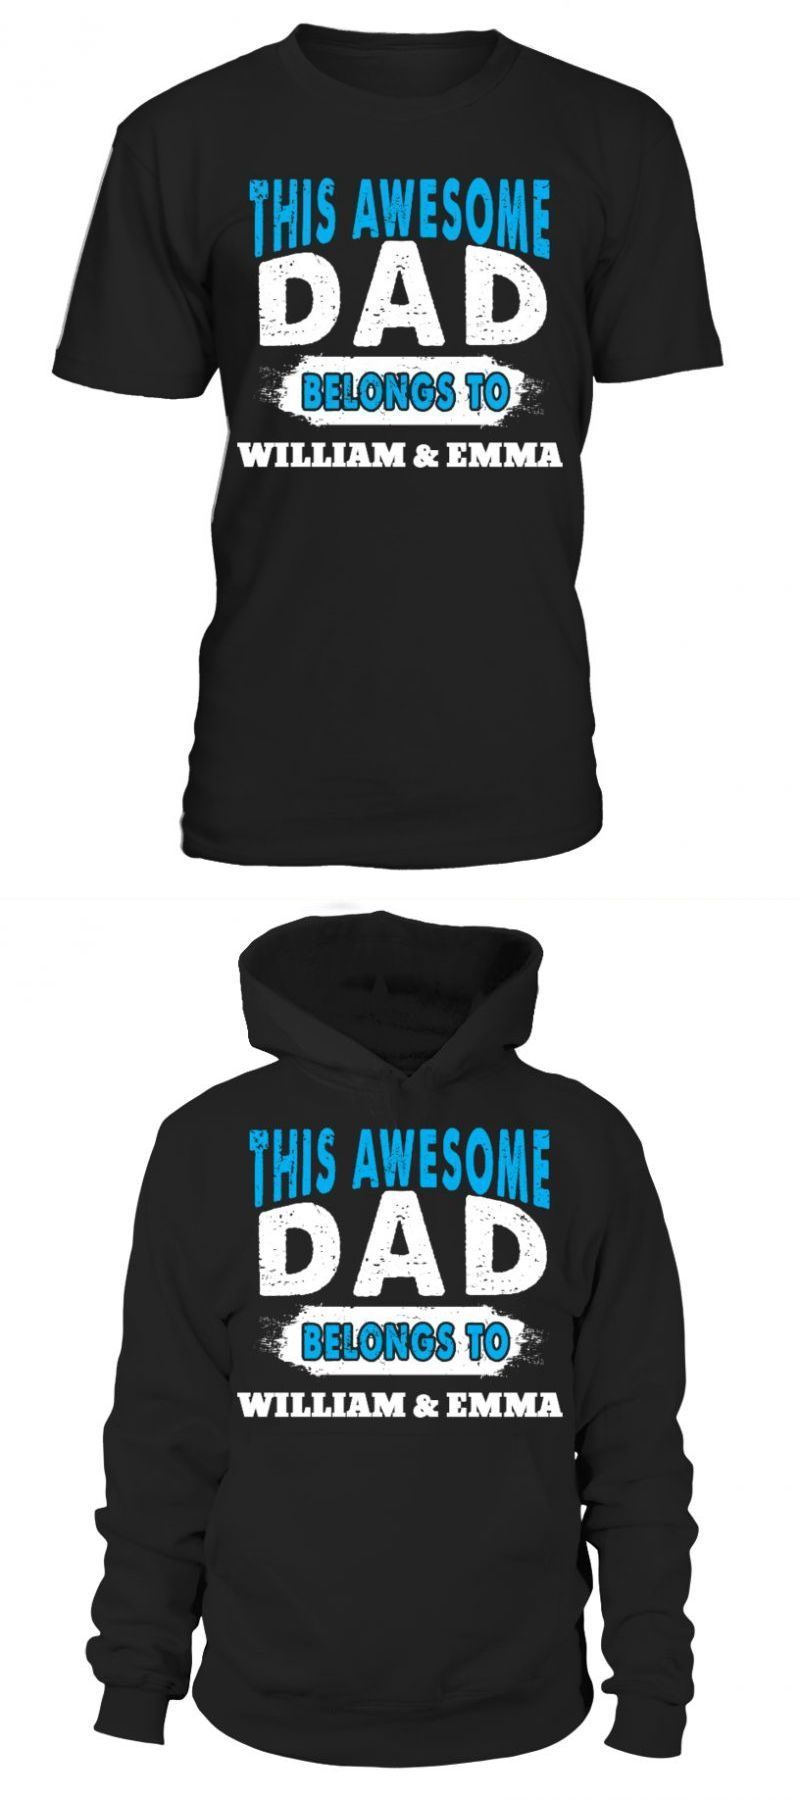 e23ebd47c Star wars father t shirt this awesome dad belongs to i am your father tee  shirt